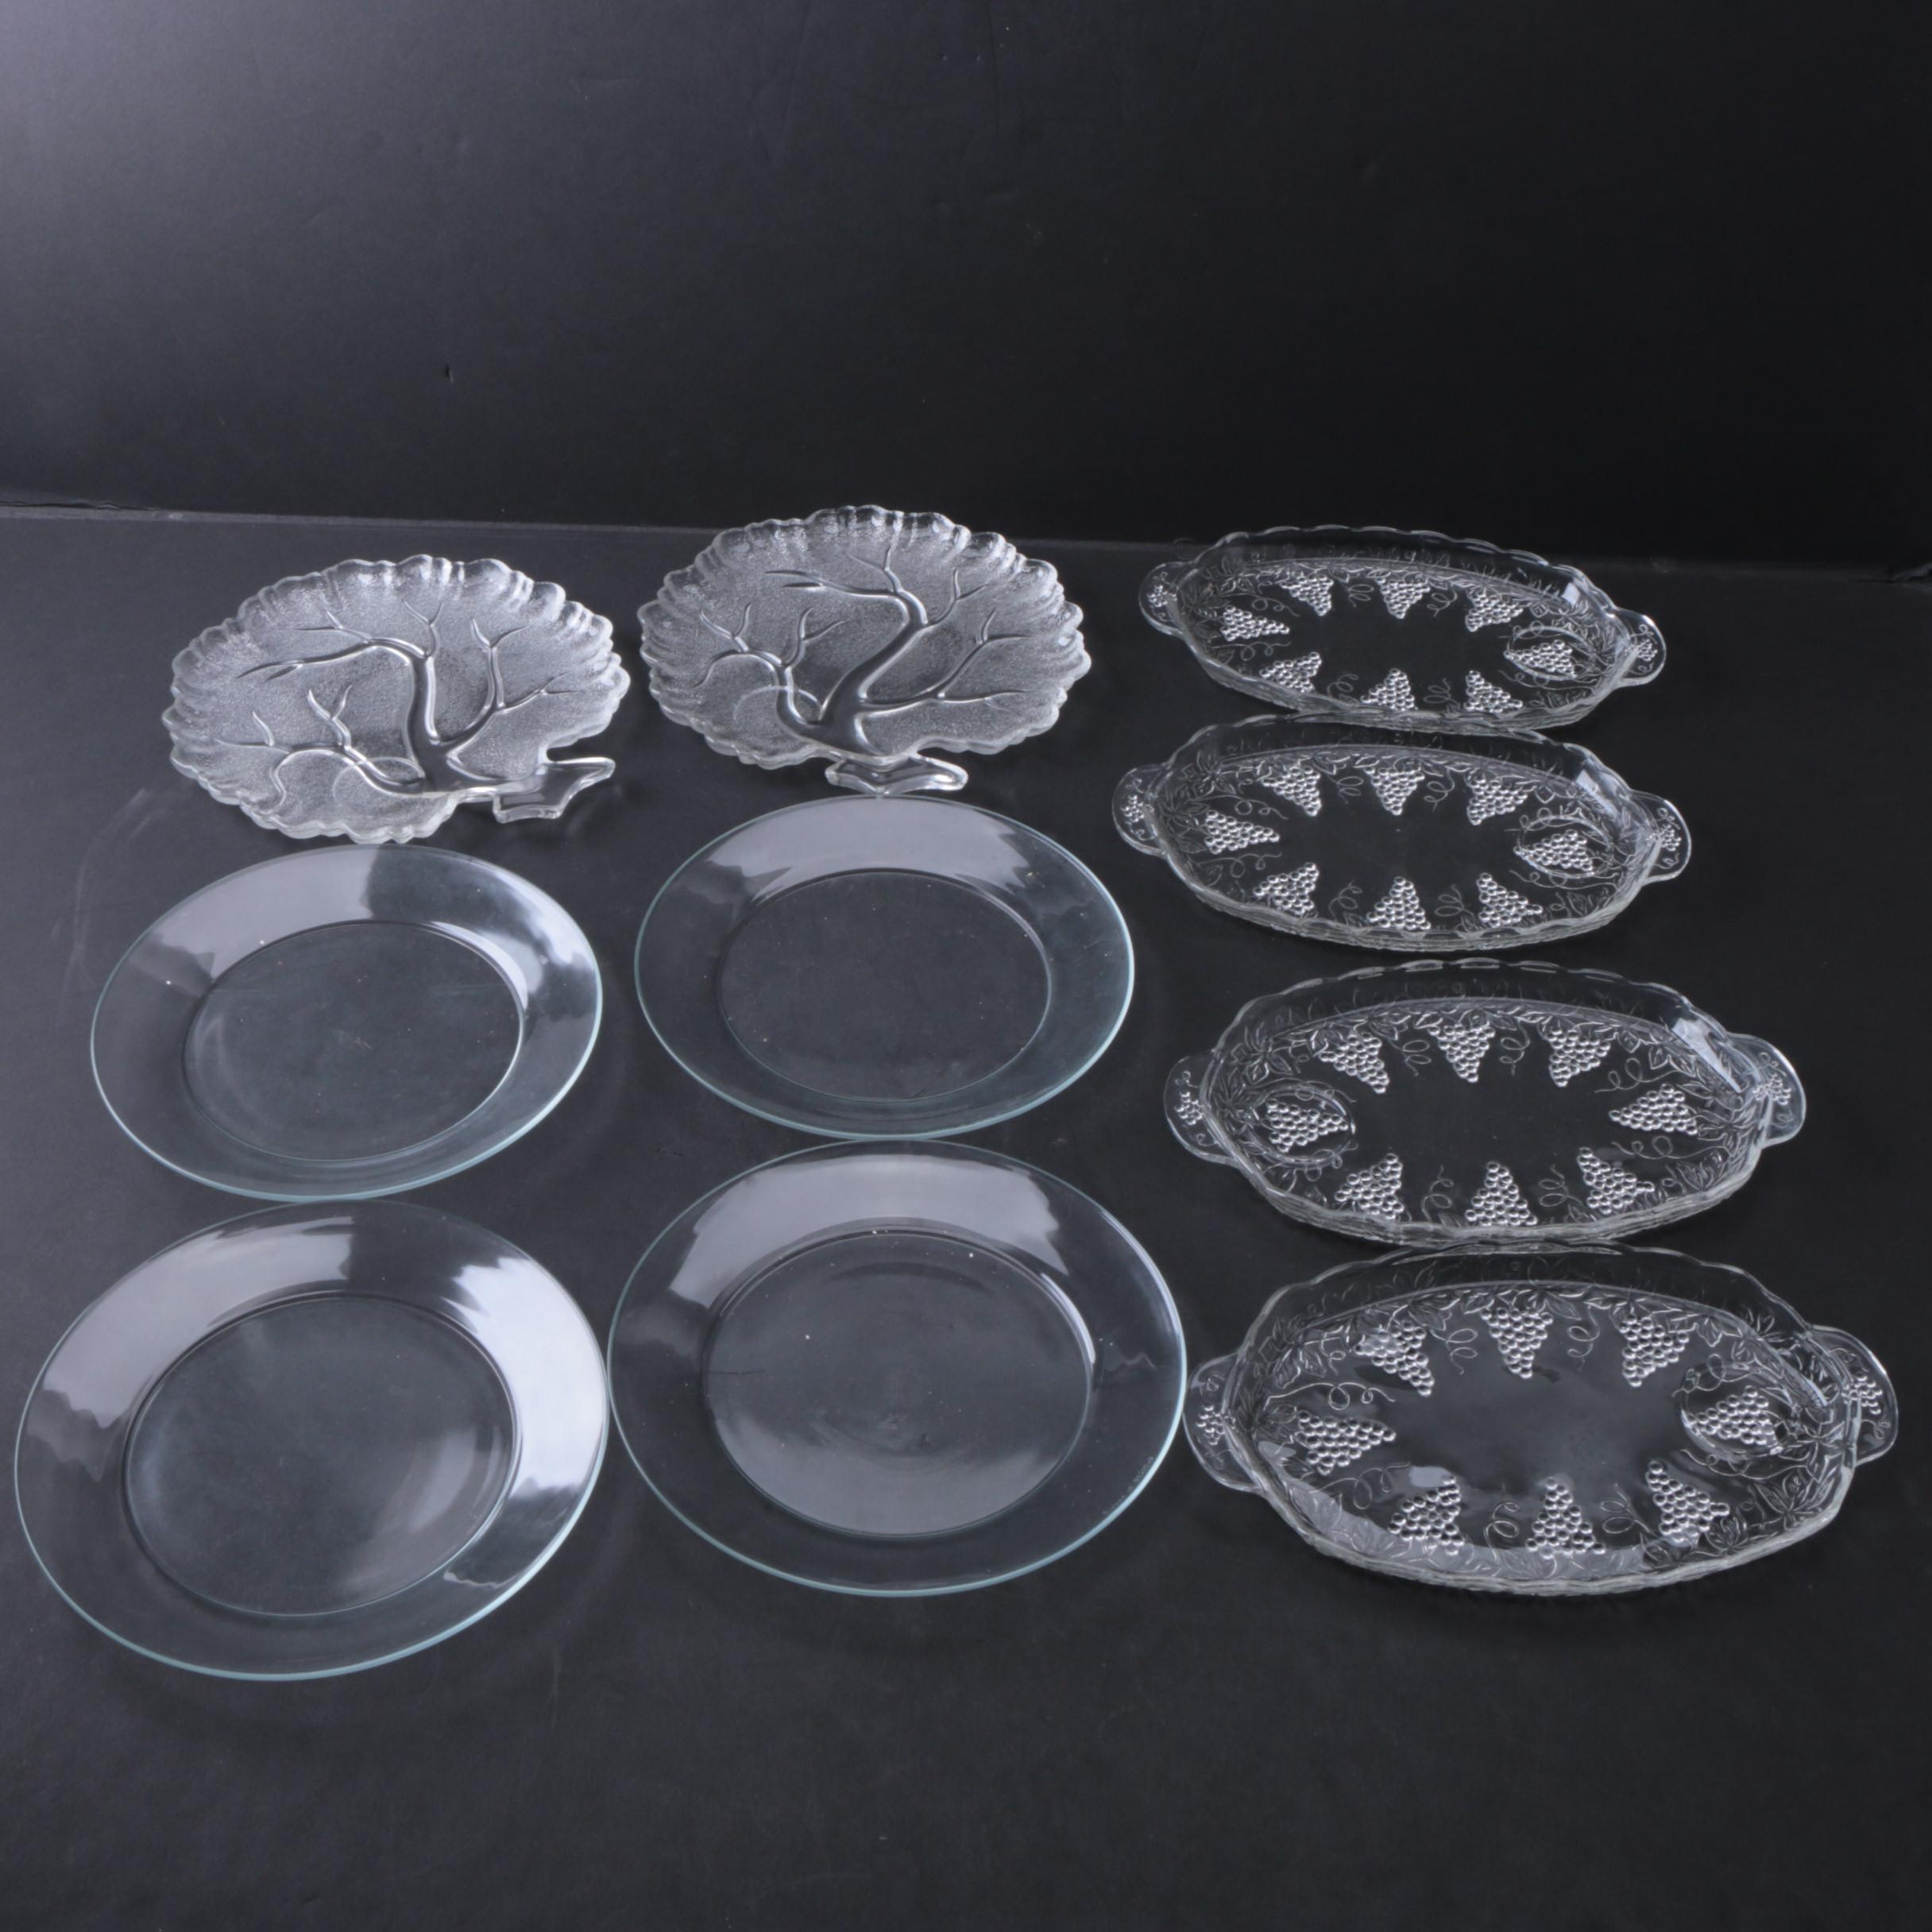 Collection of Press Glass Plates